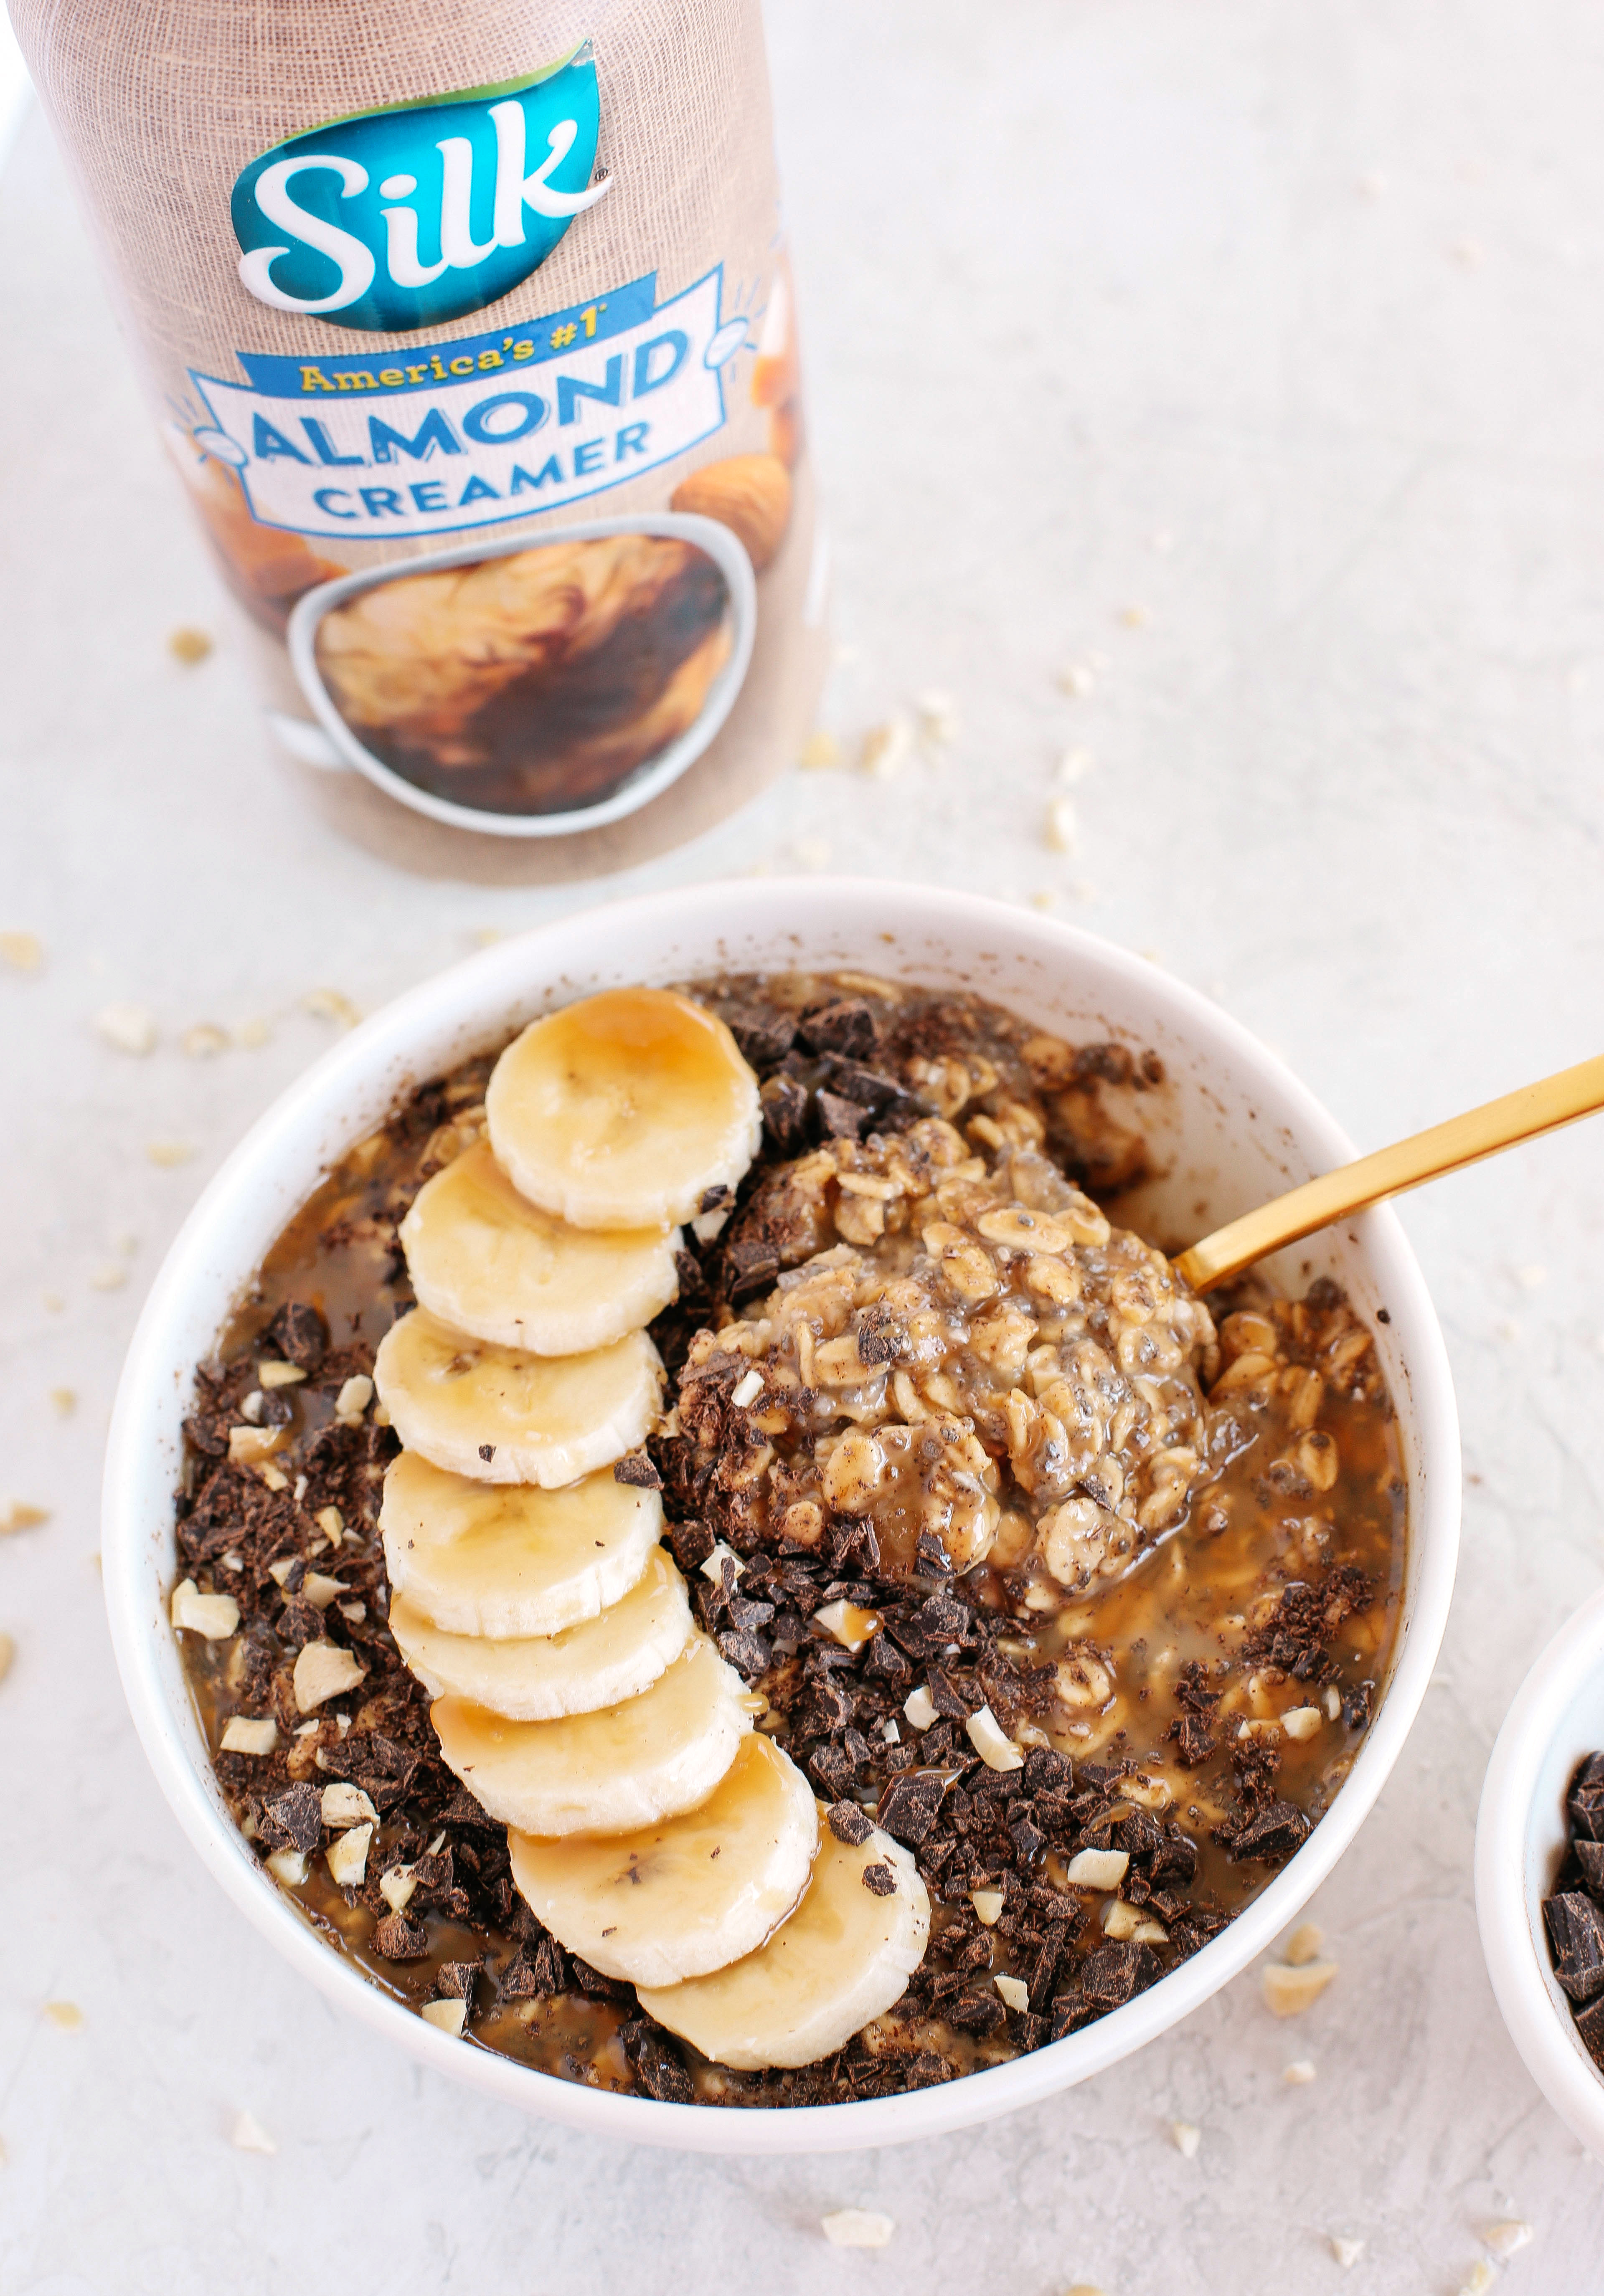 Salted Caramel Overnight Oats drizzled with a sweet homemade caramel sauce easily made in just minutes the night before giving you a deliciously decadent breakfast as soon as you wake up!